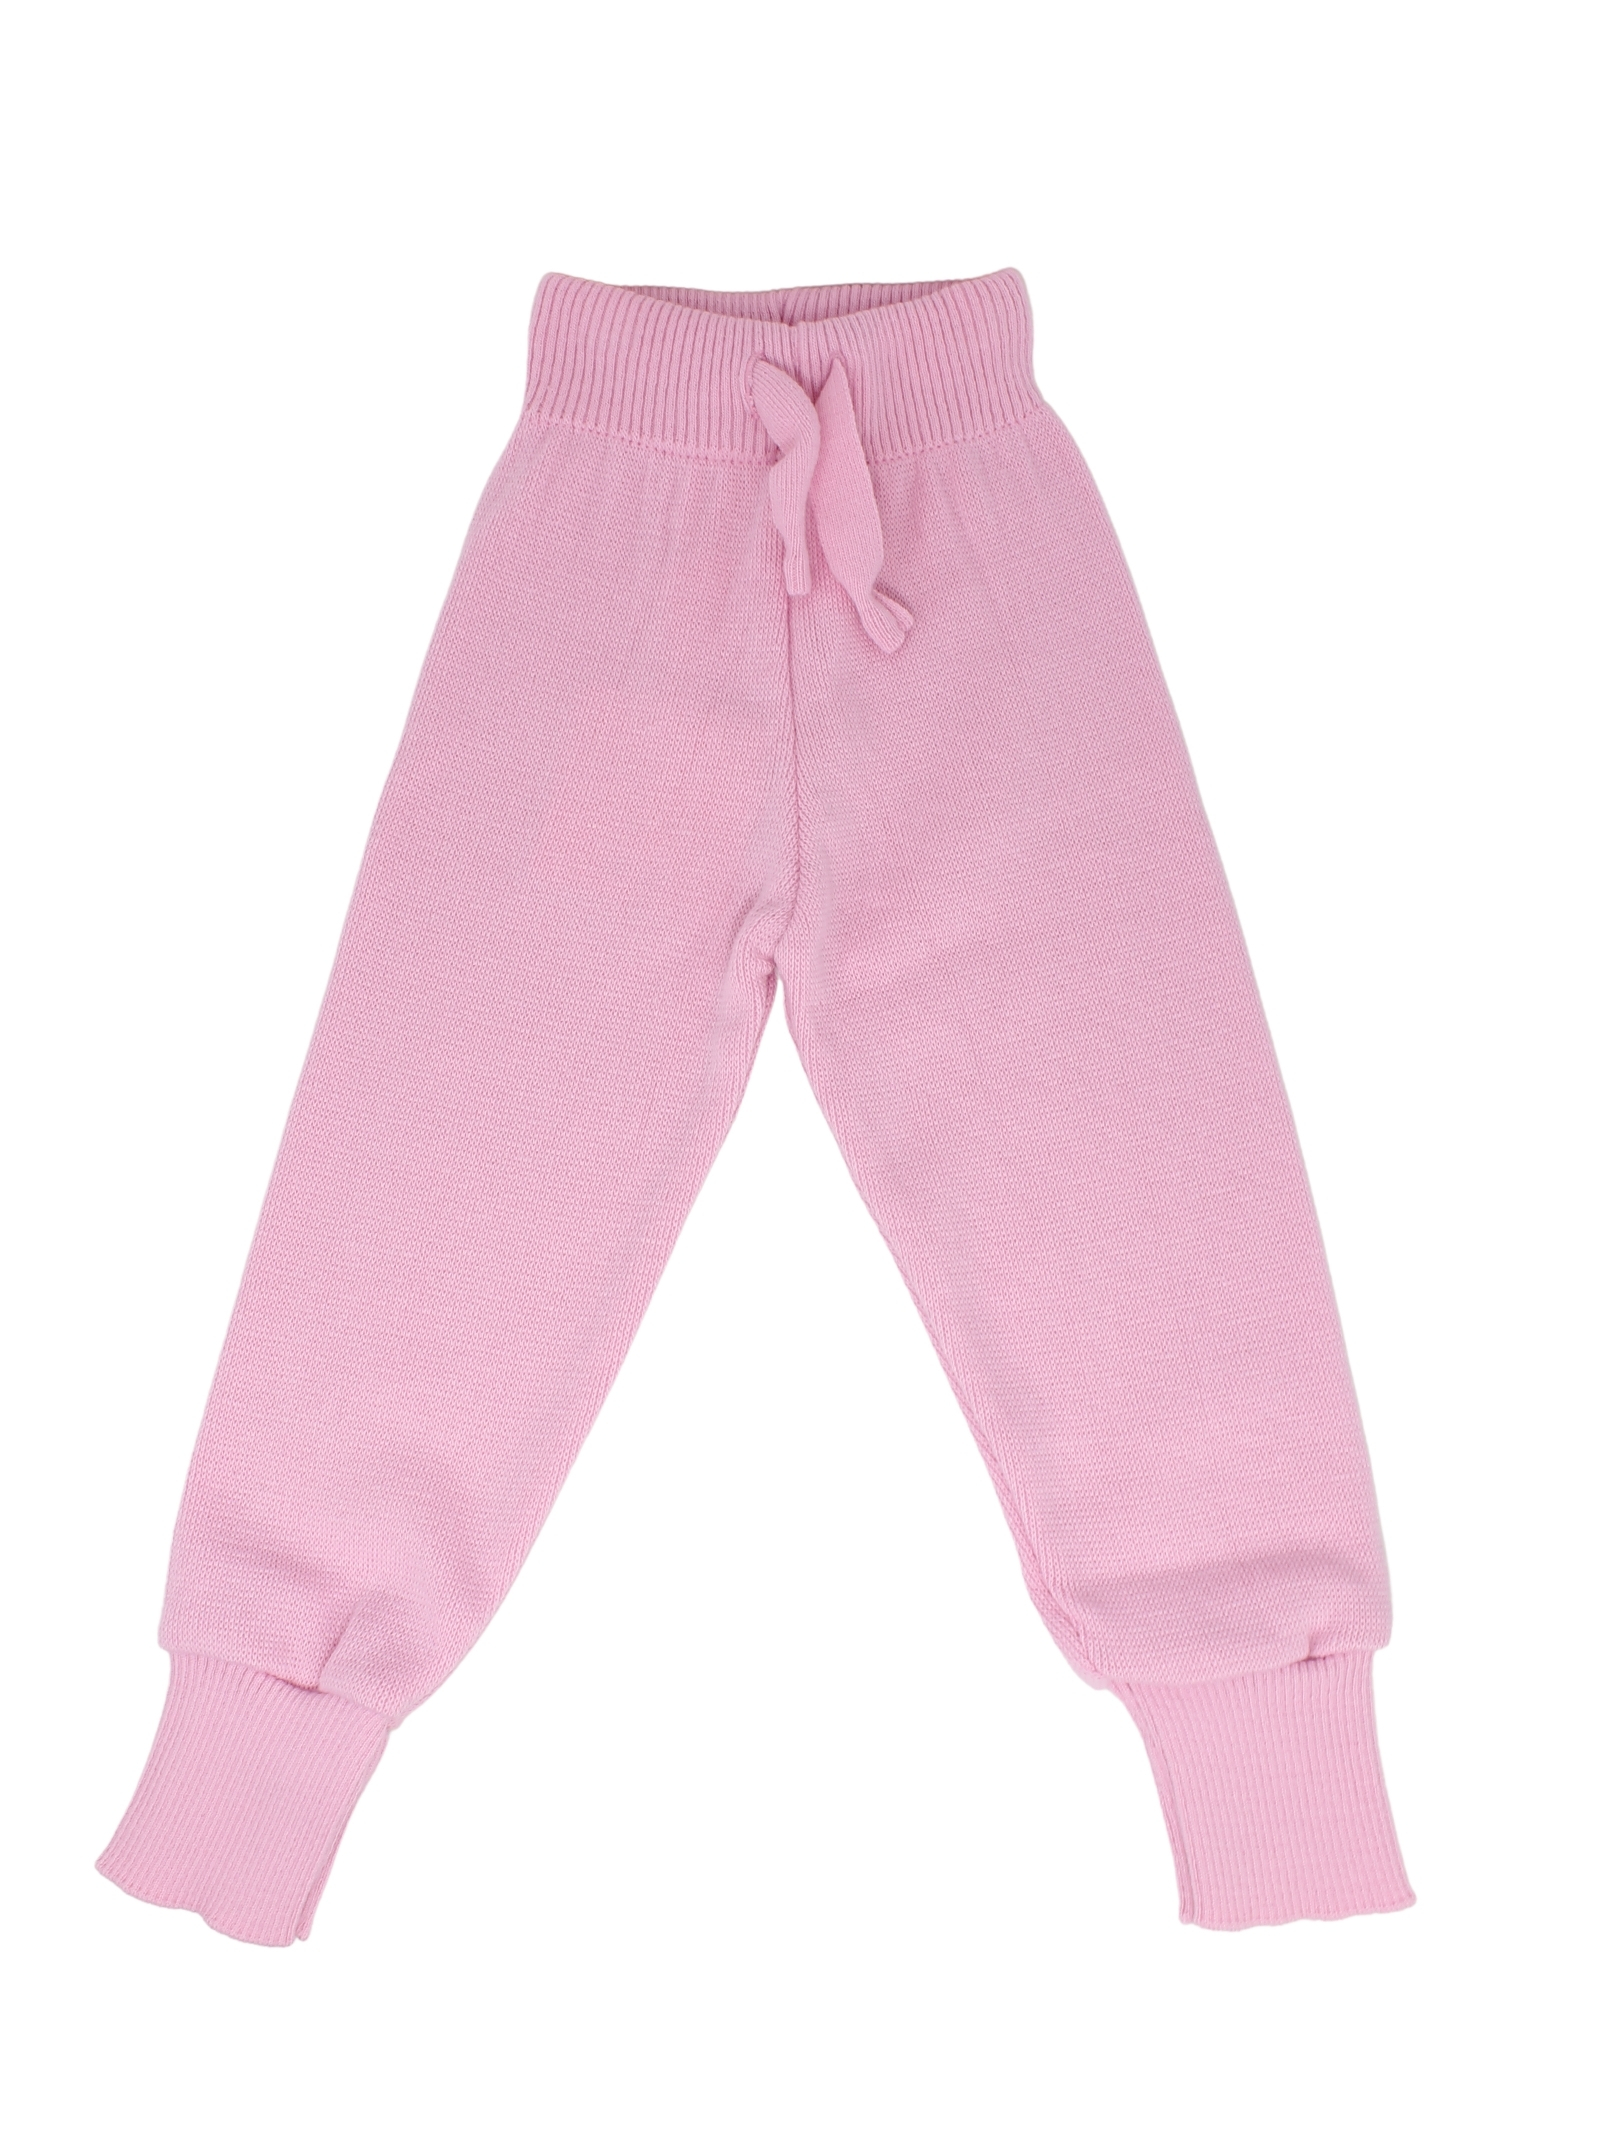 Girl's Sport Jersey Trousers VICOLO KIDS | Trousers | 3141PW0761CIPRIA